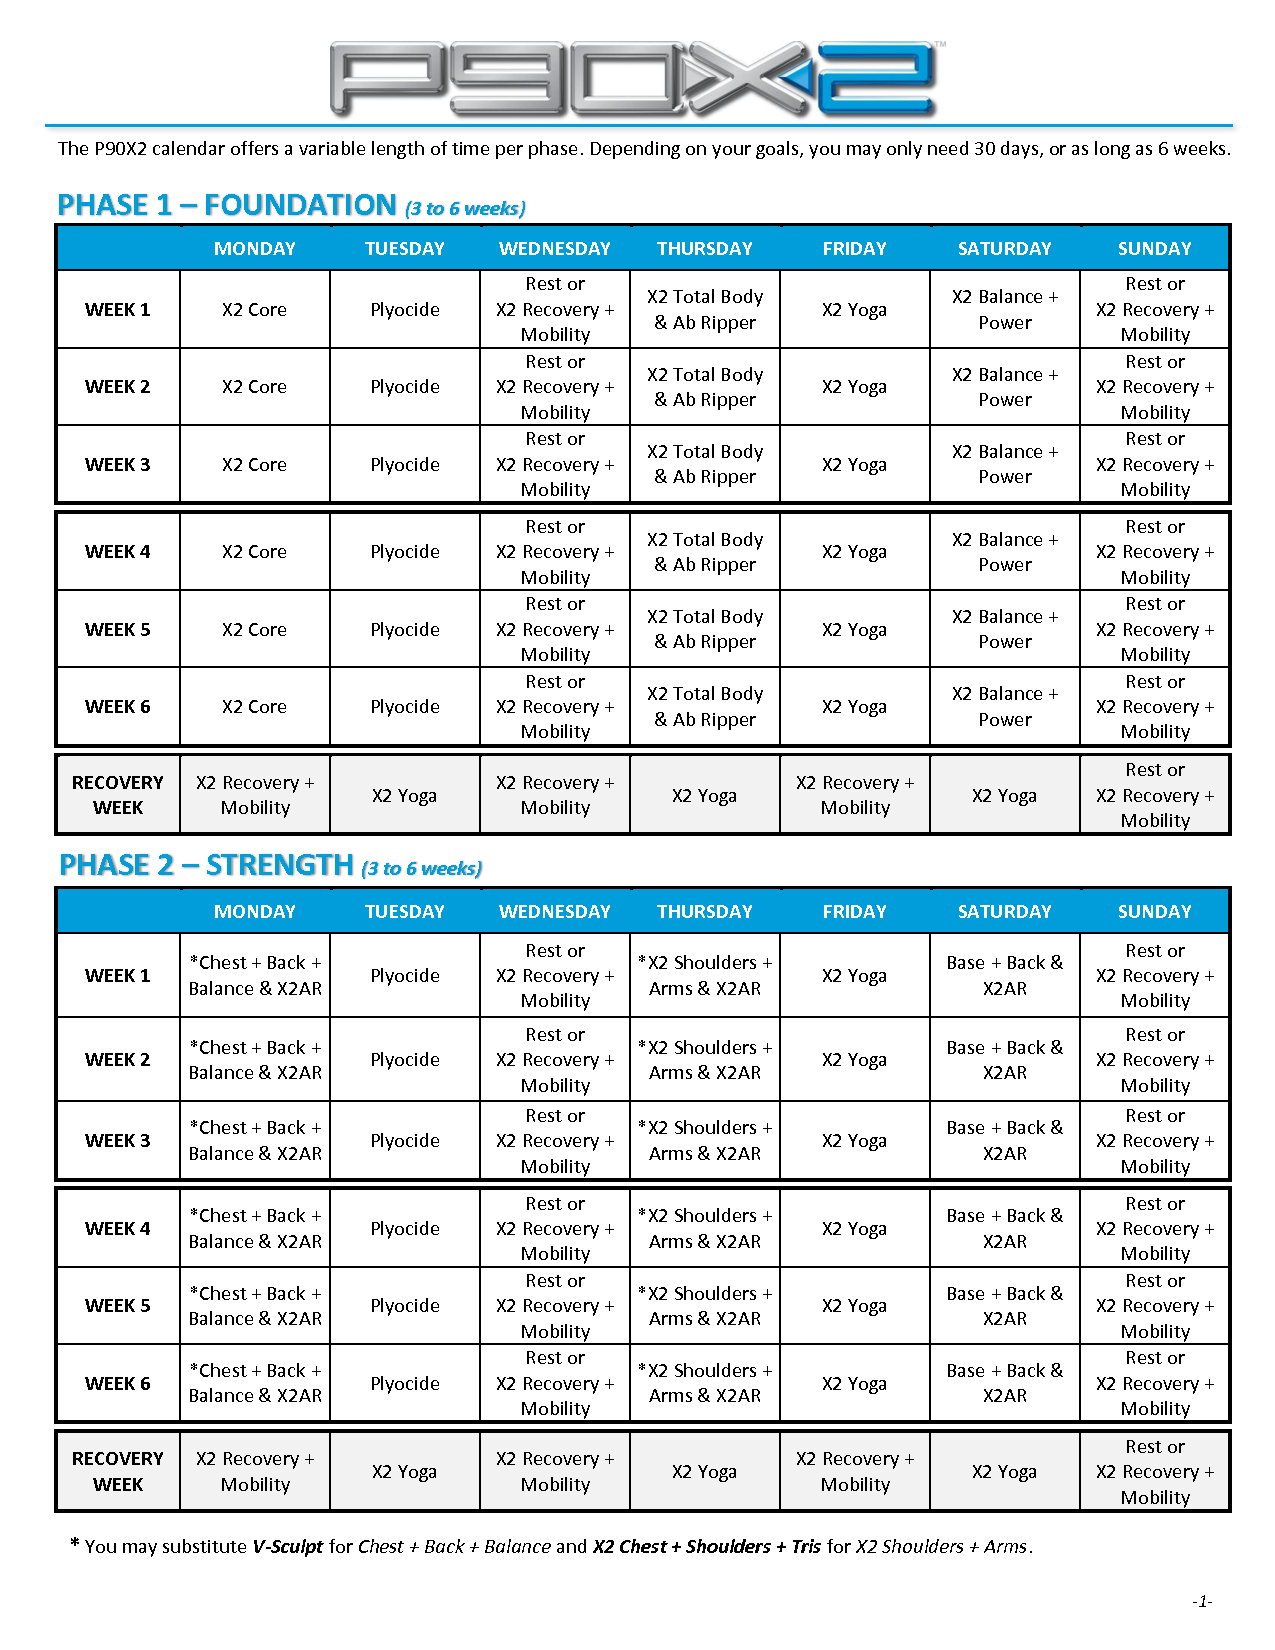 worksheet P90x2 Worksheets p90x2 workout schedule sheetsworkout ekapocs 1000 images about schedules on calendar and meals